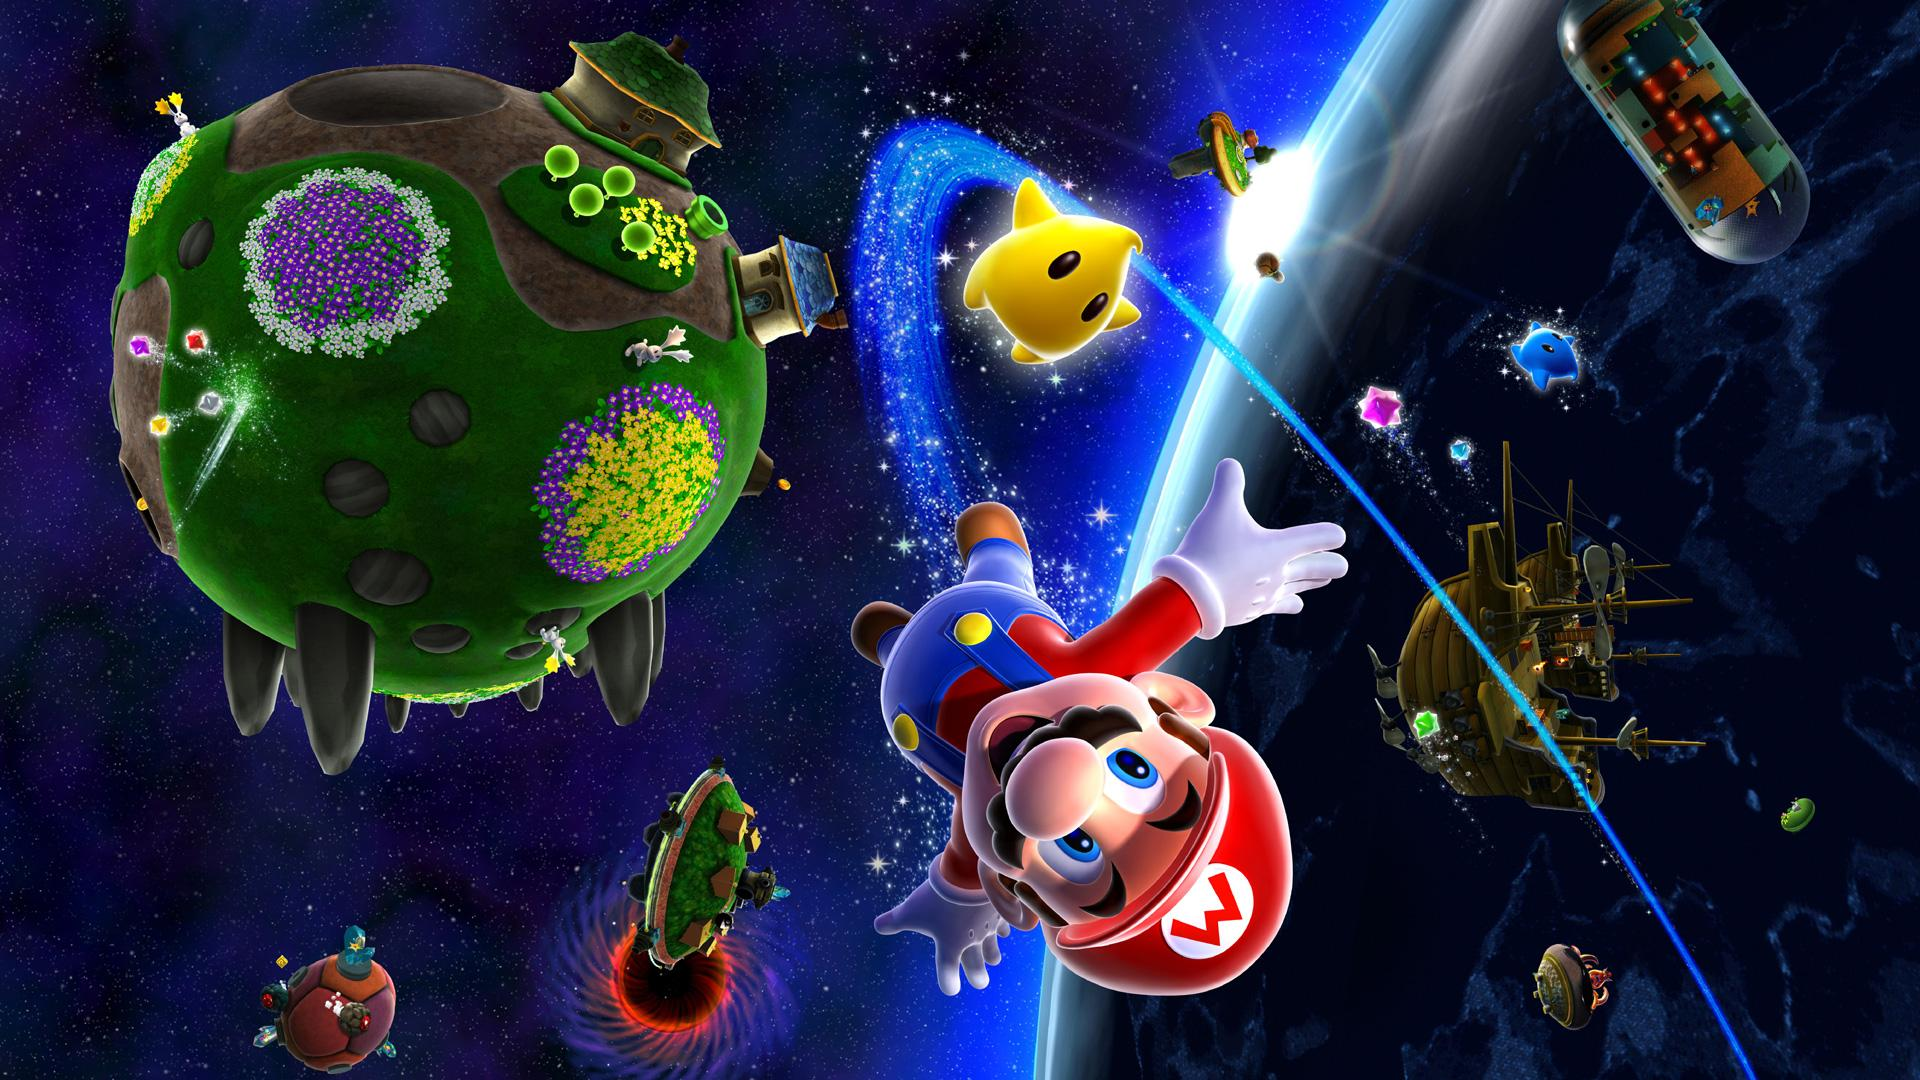 Super Mario Galaxy Wallpapers - Wallpaper Cave